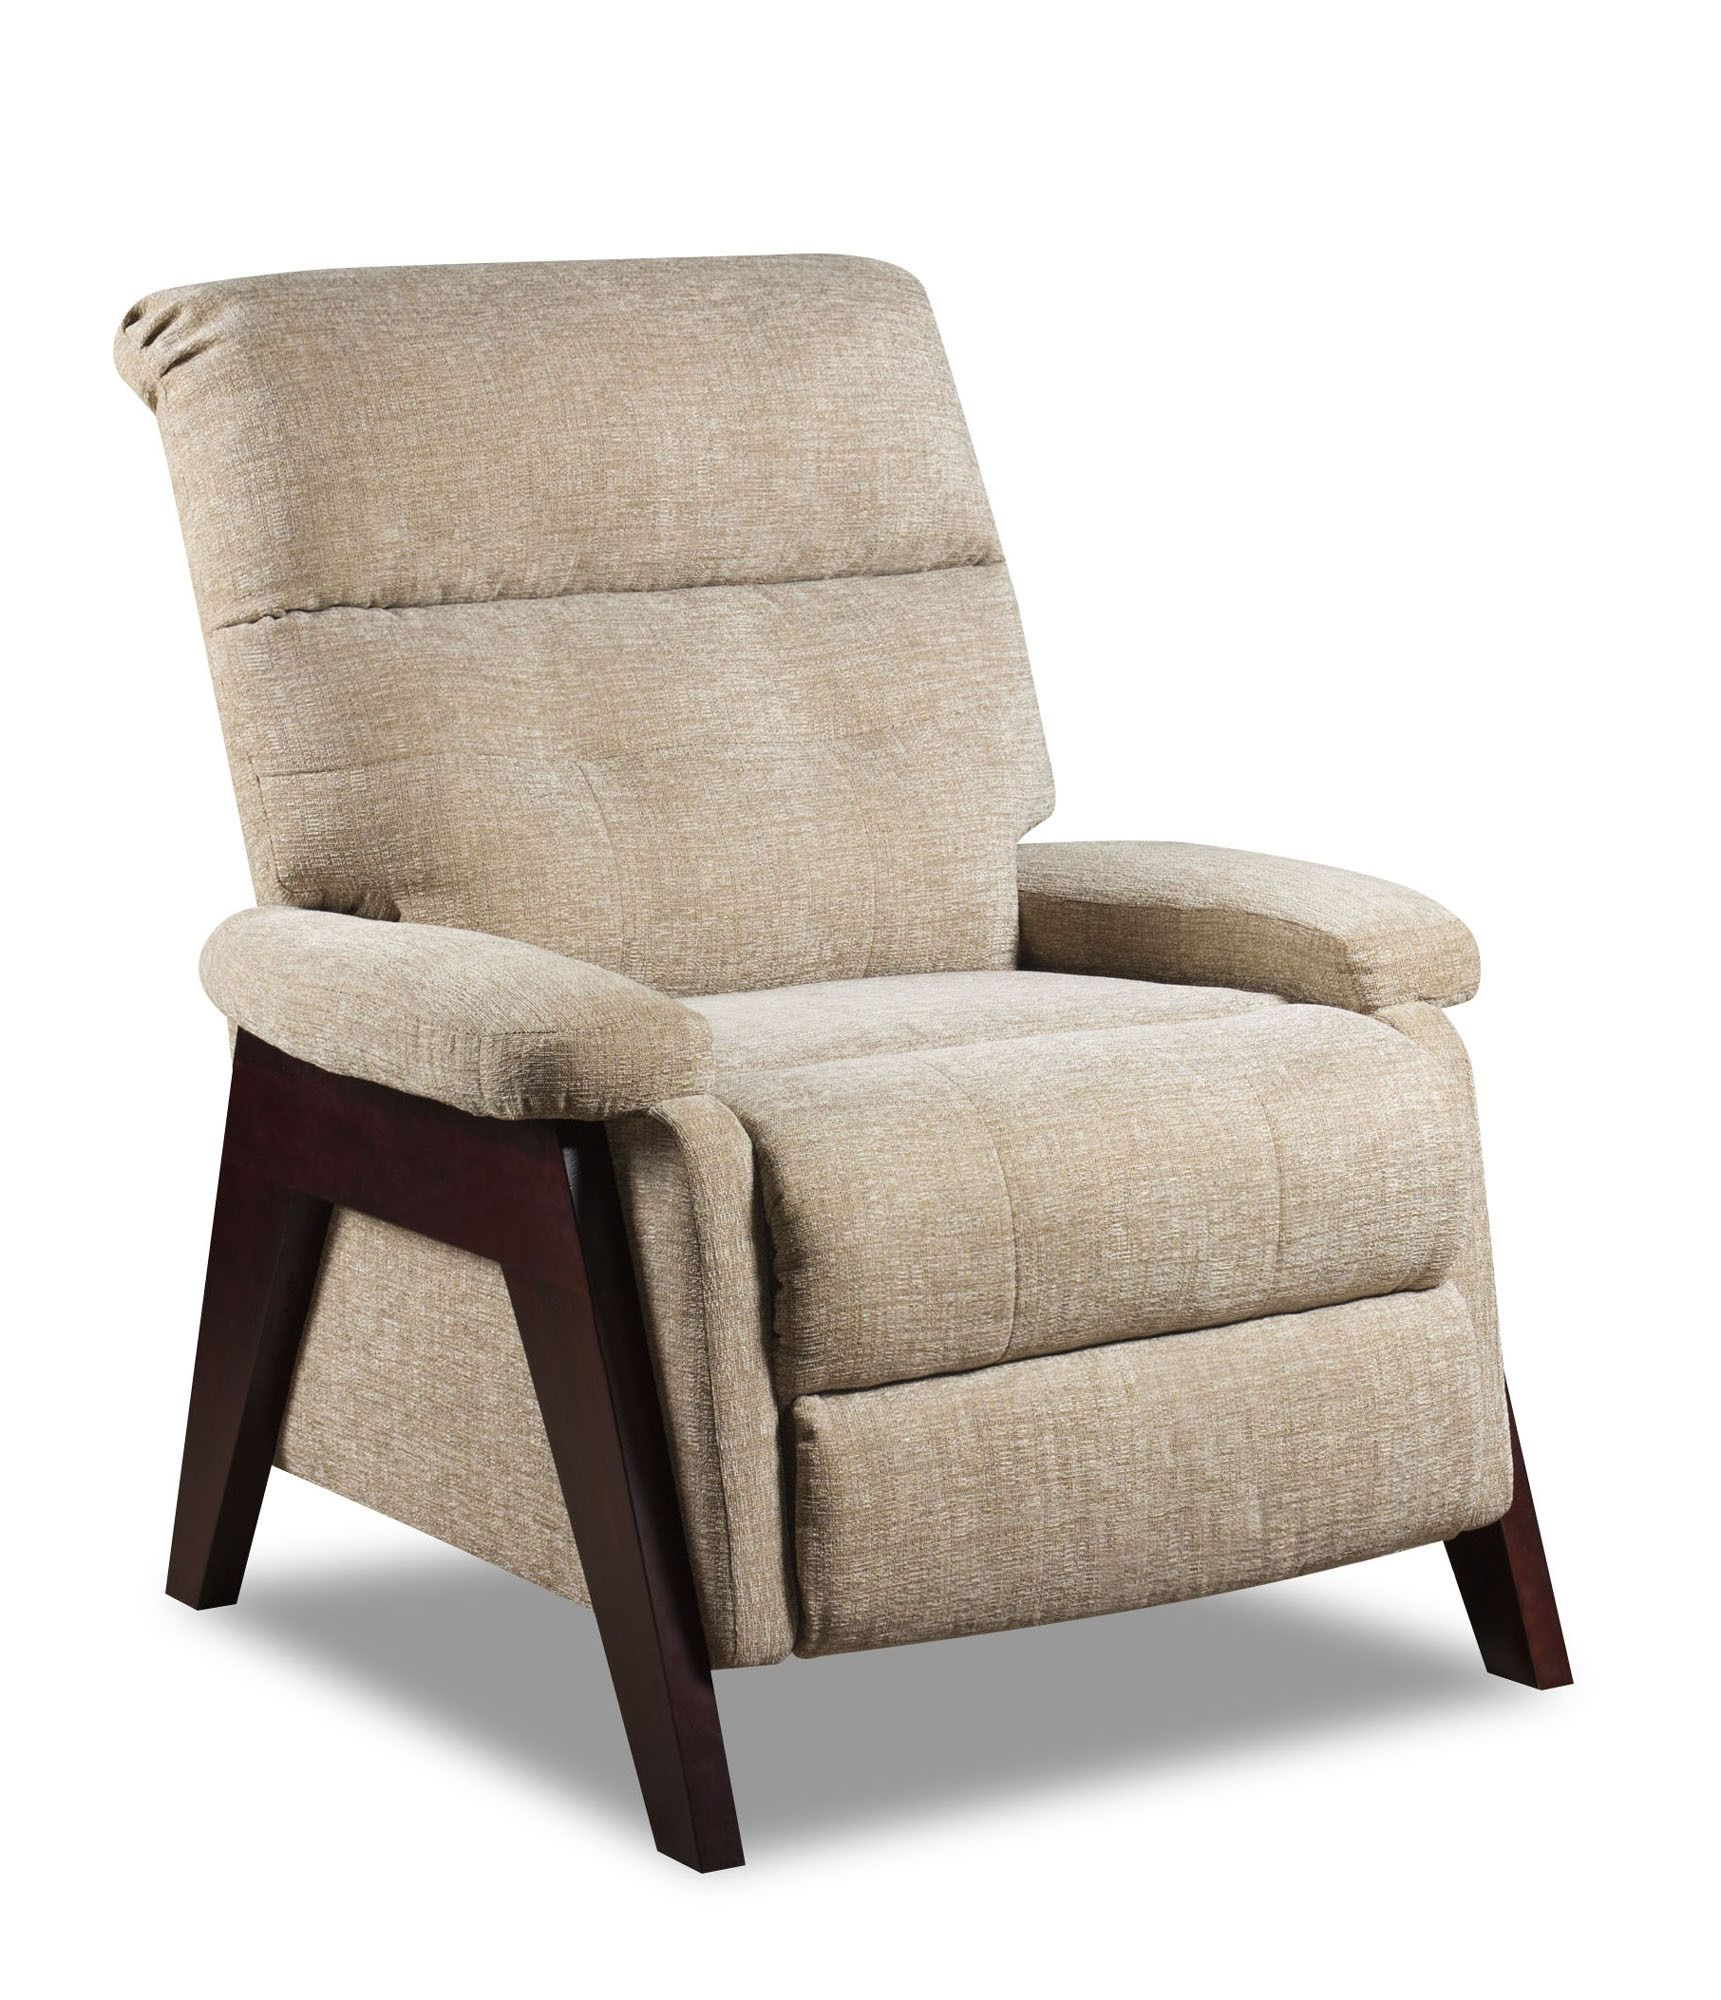 Winwood High Leg 3 Way Recliner By Southern Motion Furniture   Home Gallery  Stores